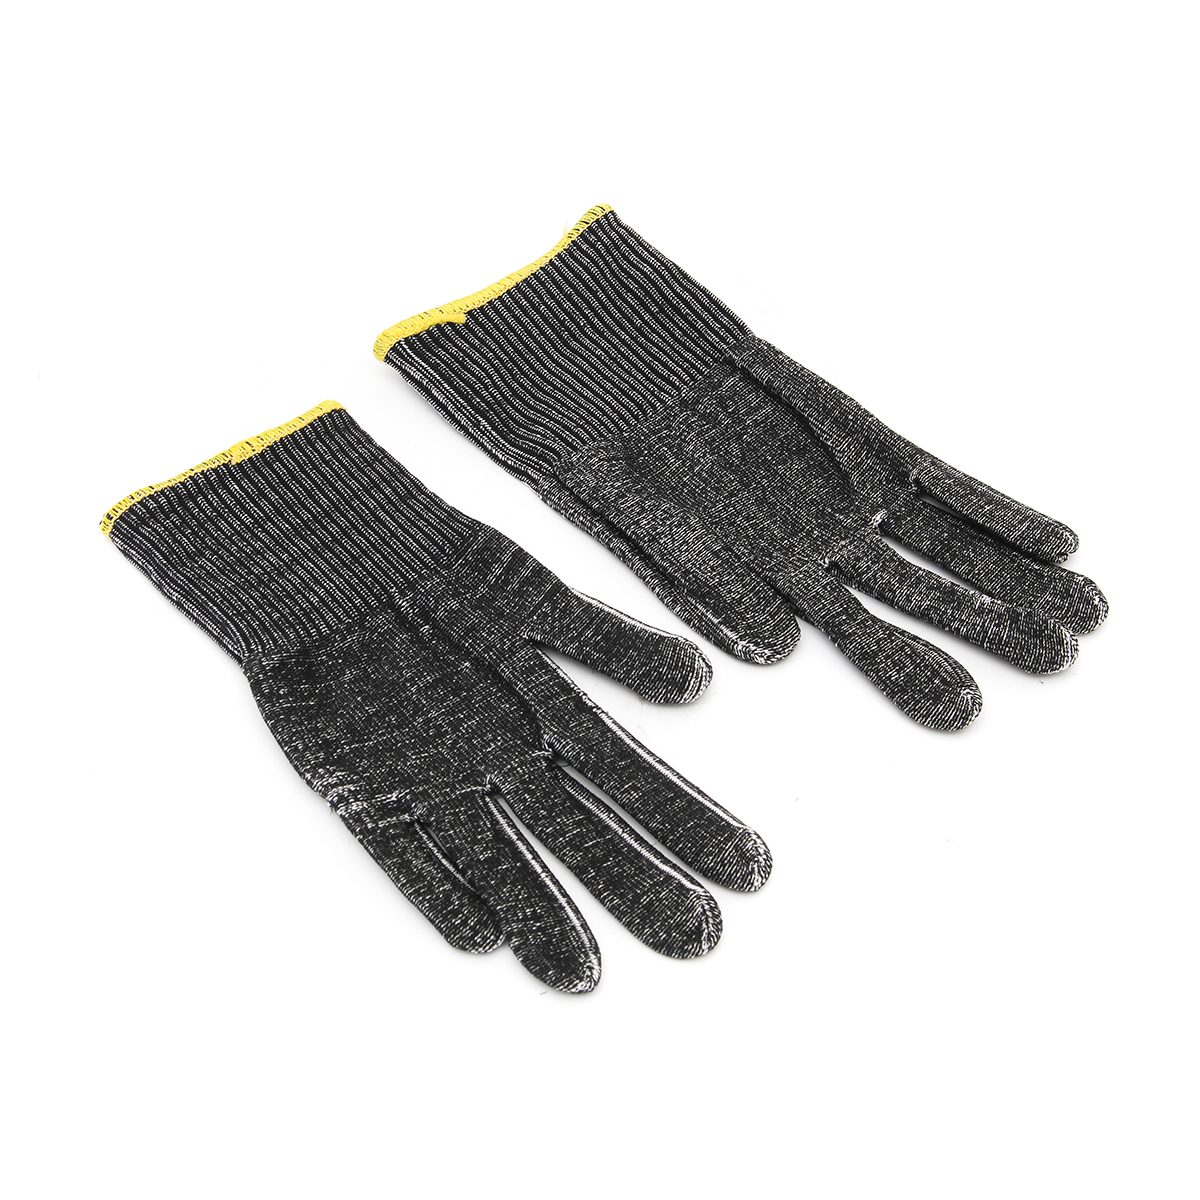 MECO 240mm Large Safety Cut Stab Proof Resistant Protective Mesh Butcher Gloves